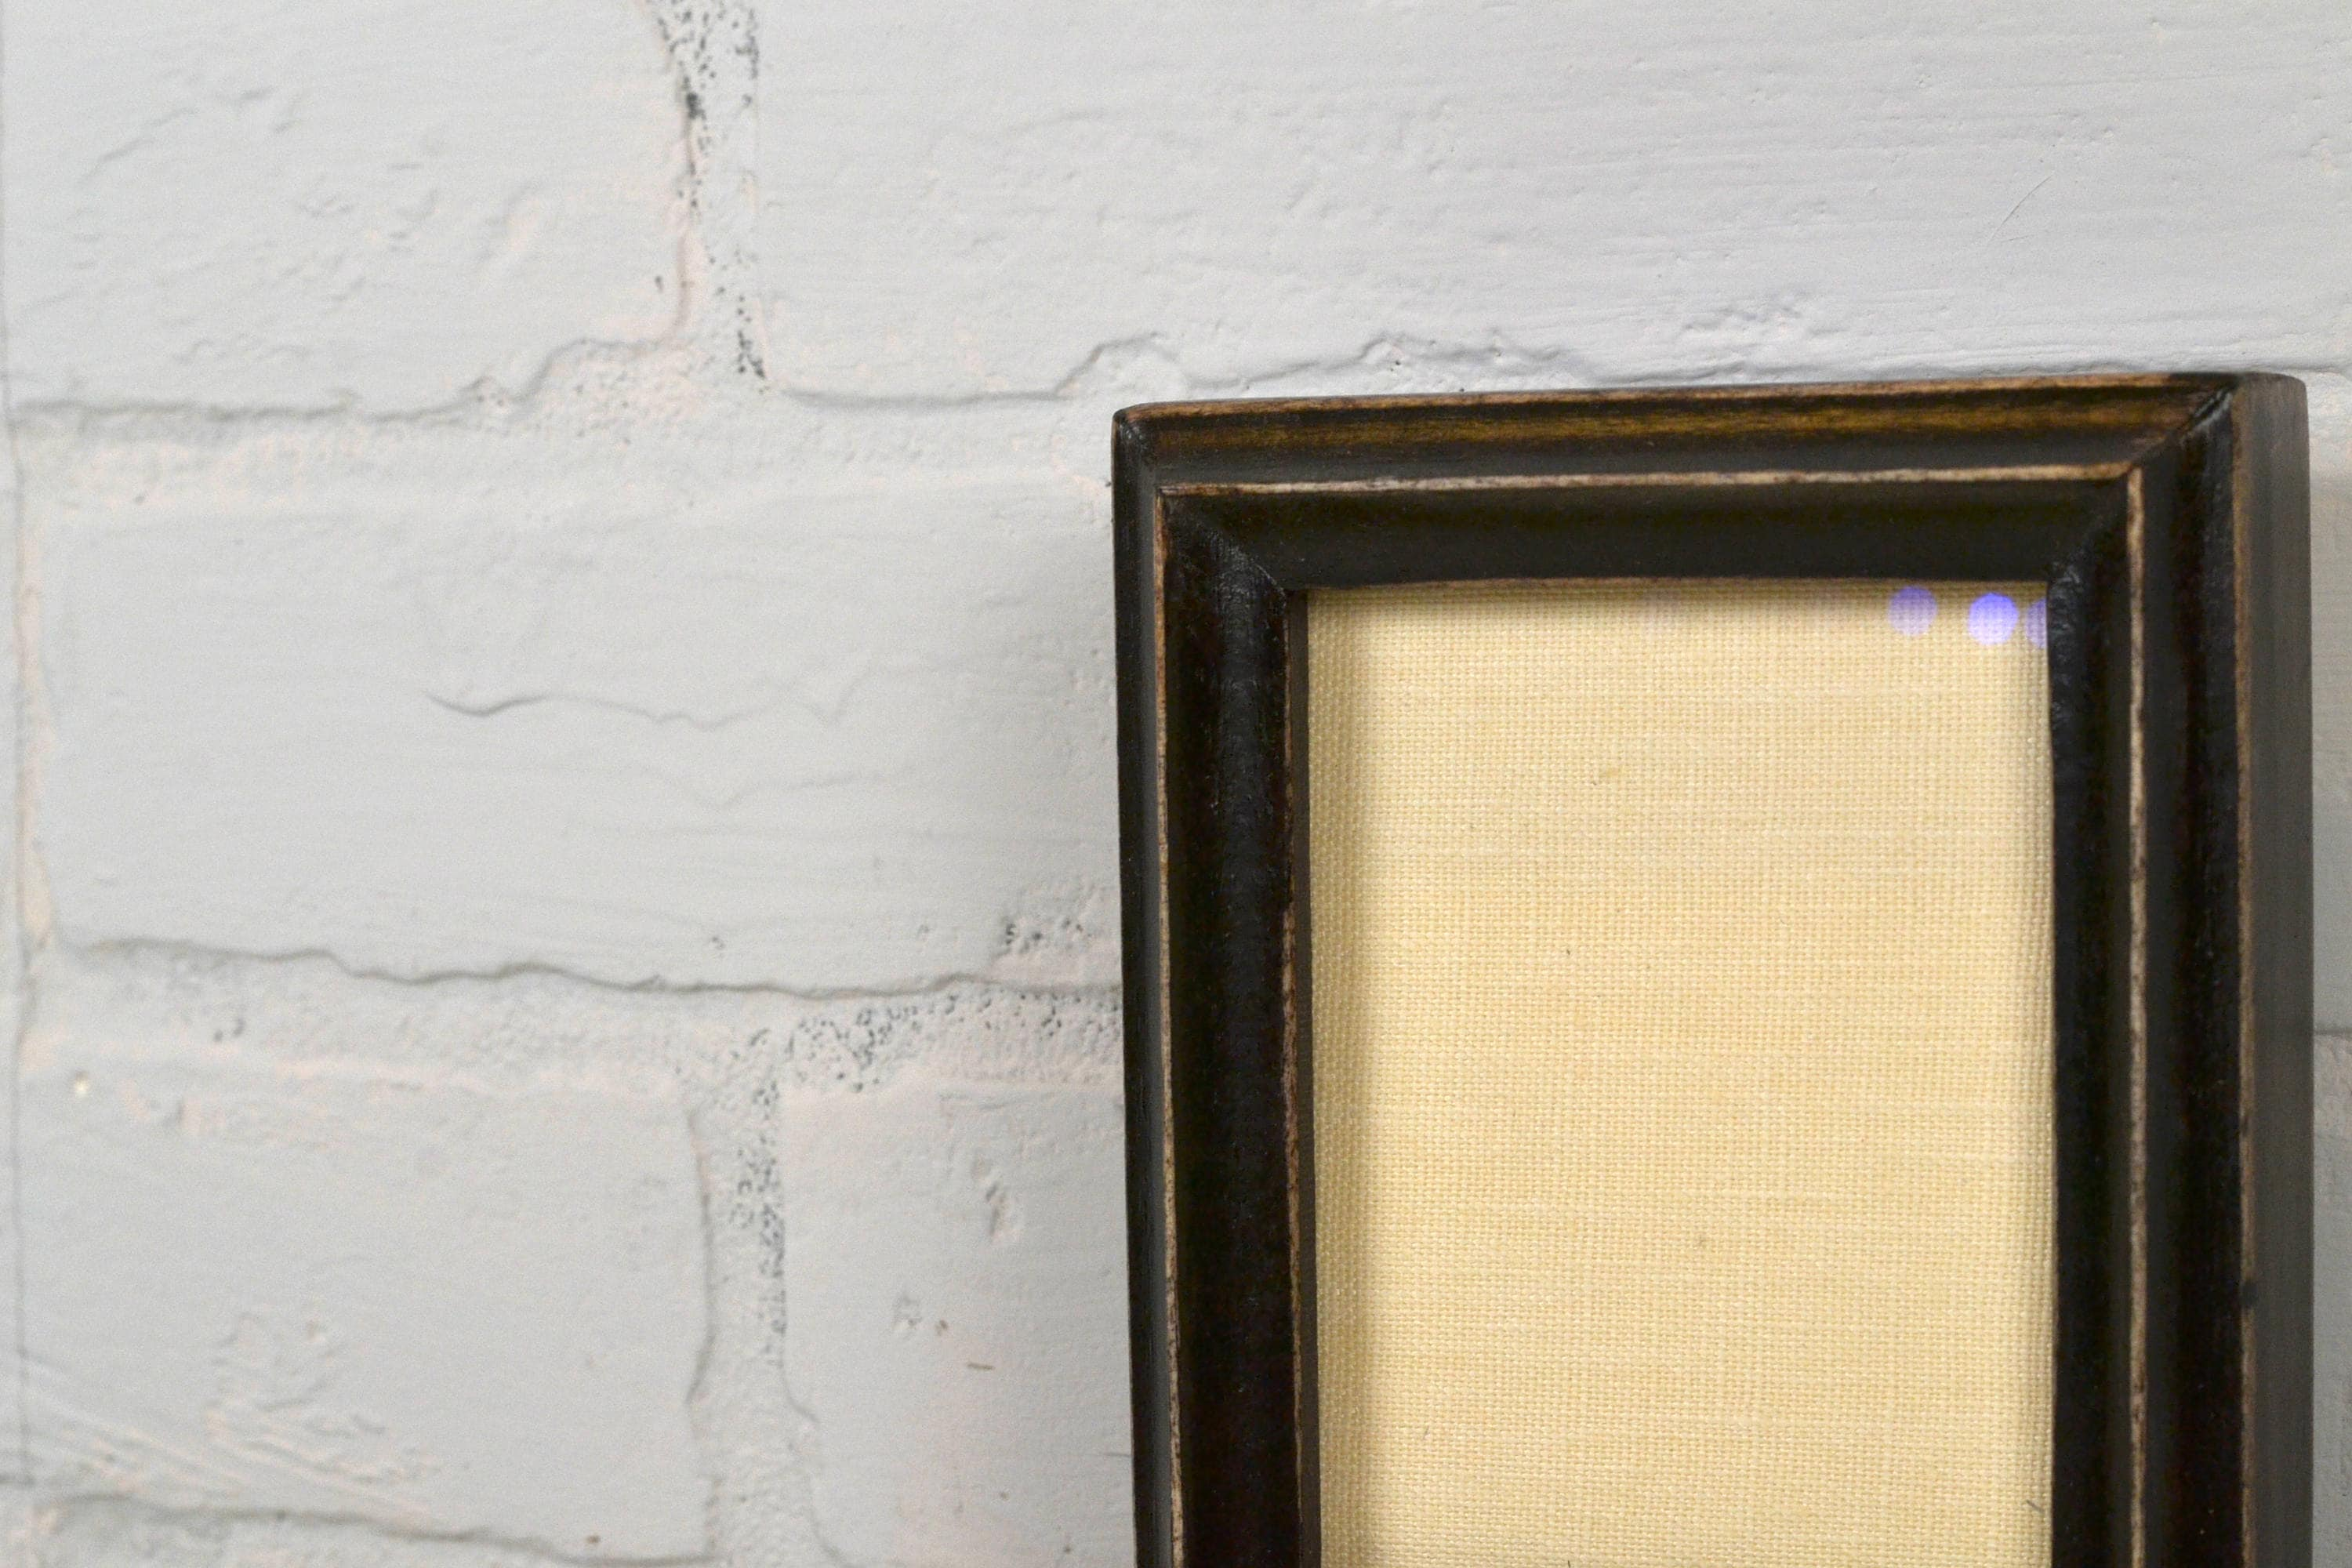 35x45 Aceo Wallet Size Picture Frame With Vintage Black Finish In